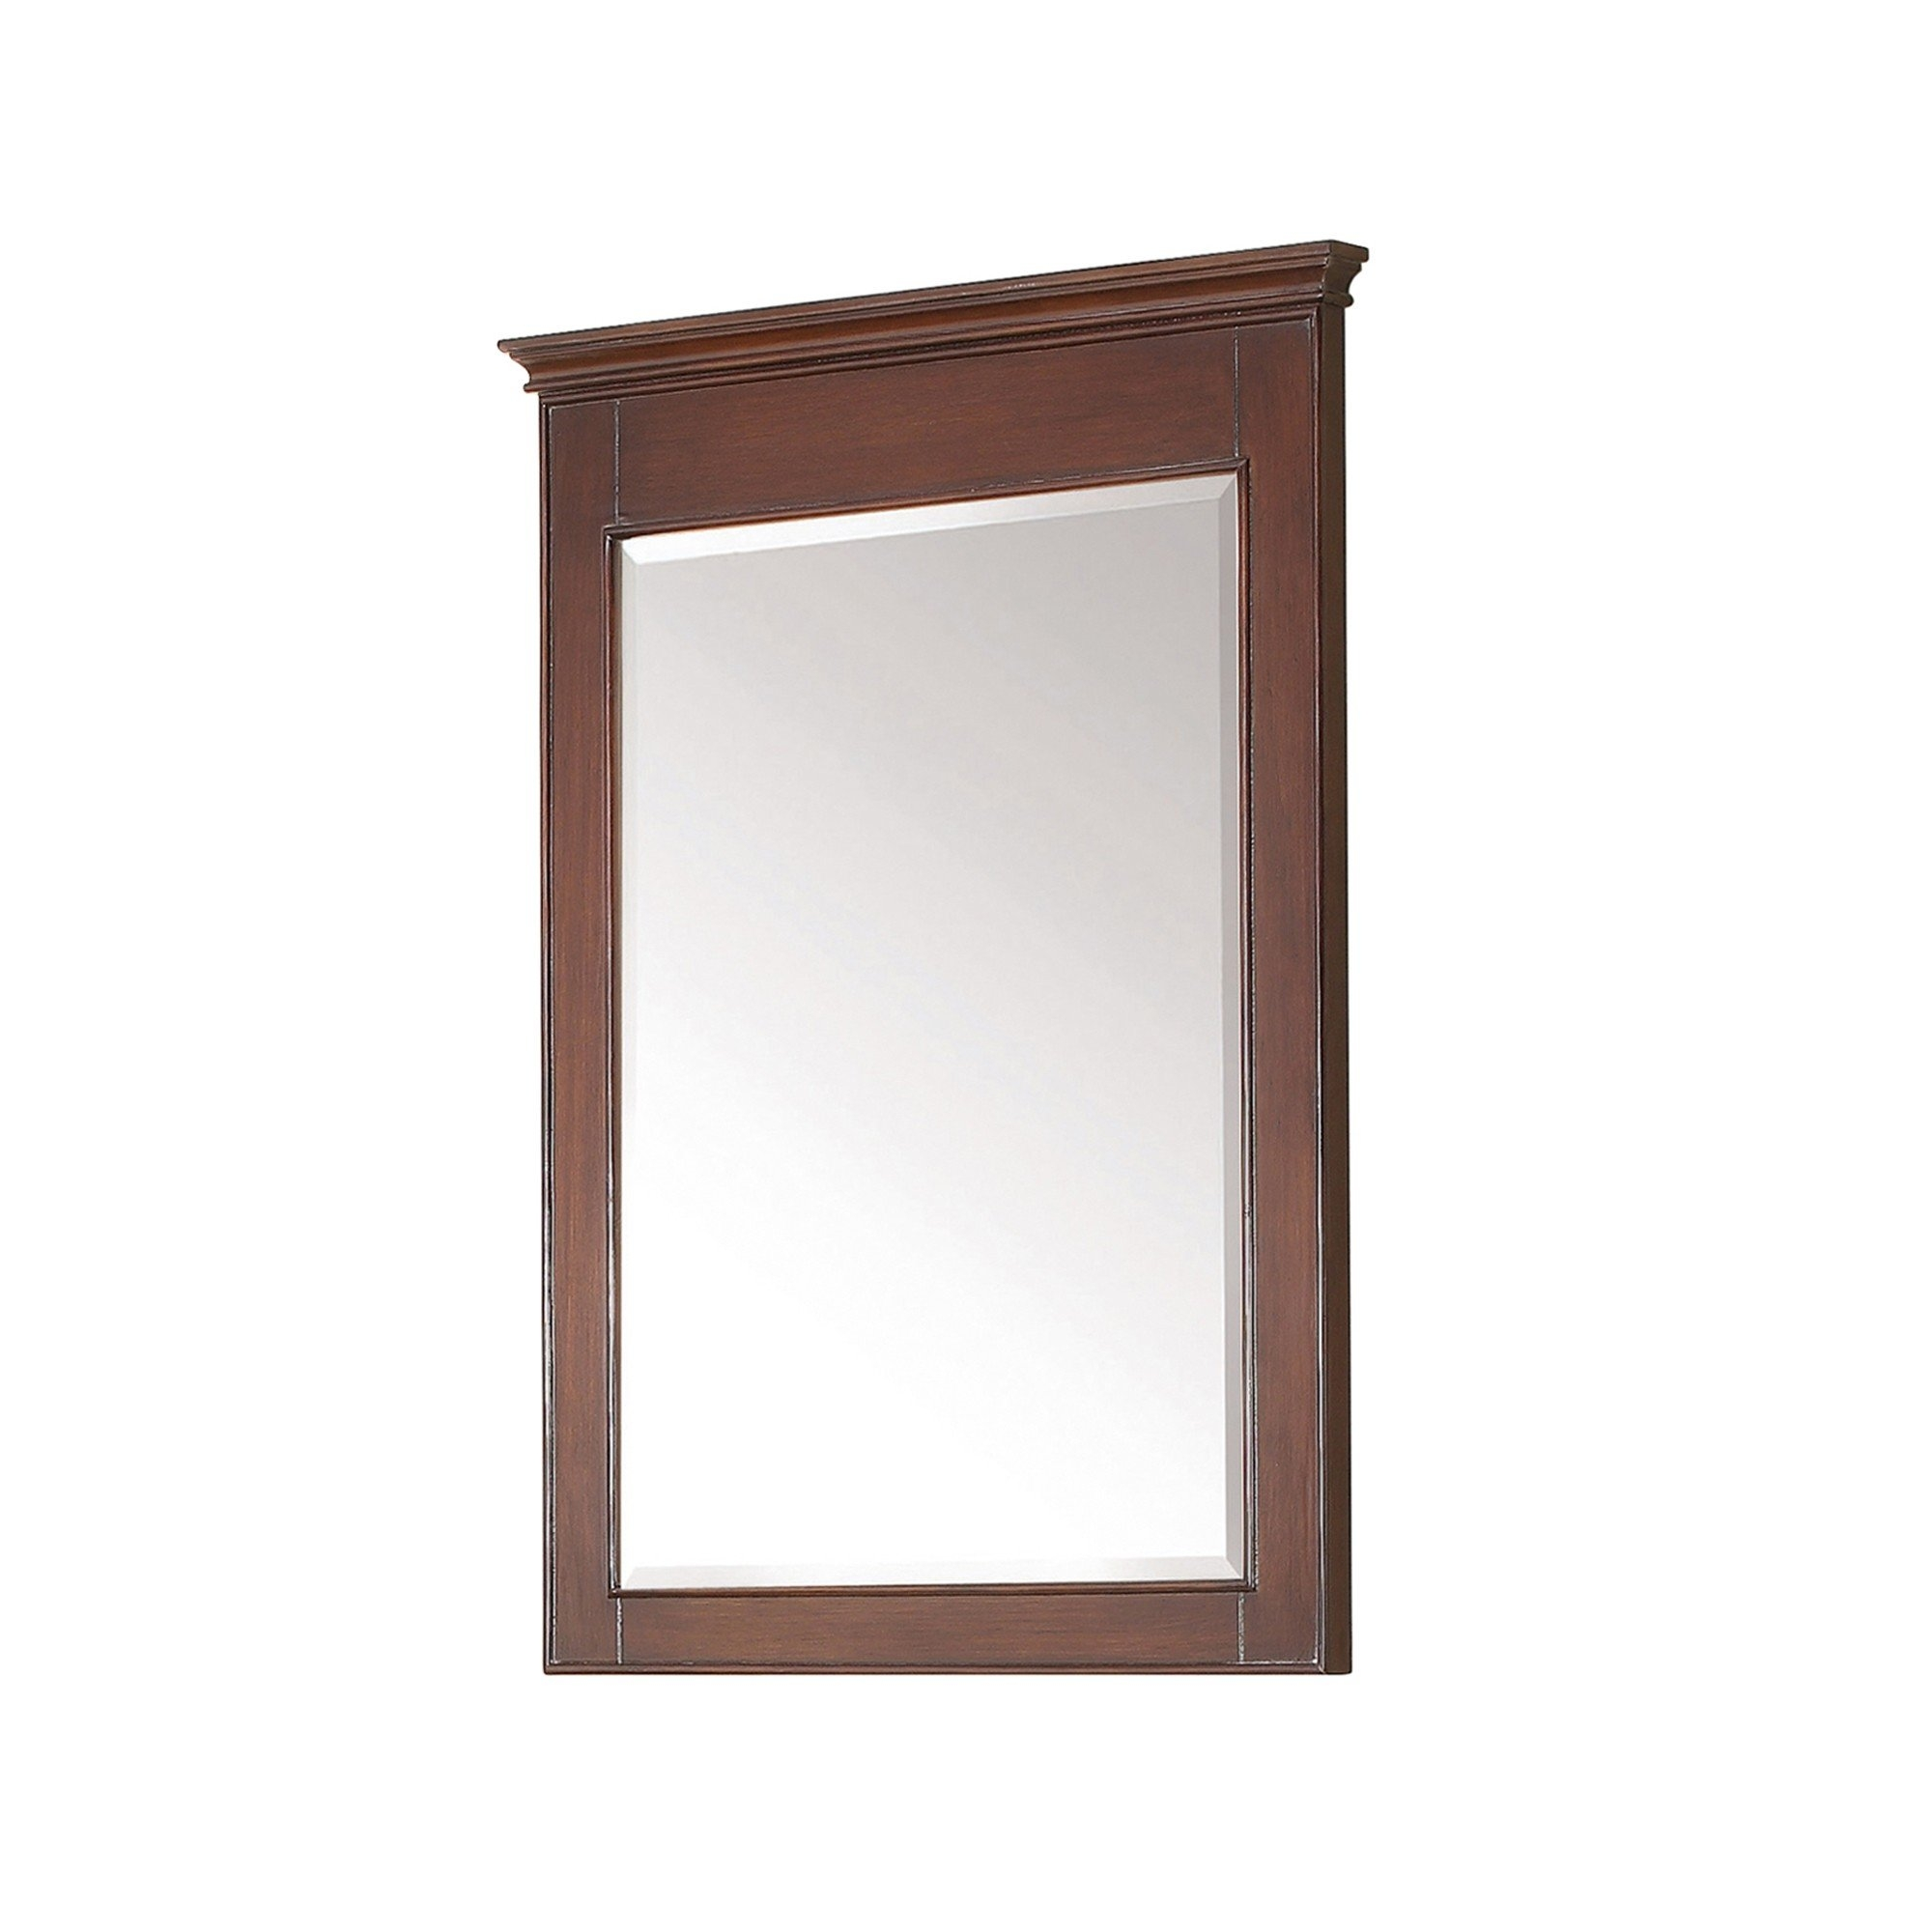 Red Barrel Studio Chippewa Rectangle Wall Mirror Reviews Wayfair Inside Red Wall Mirrors (Image 12 of 15)